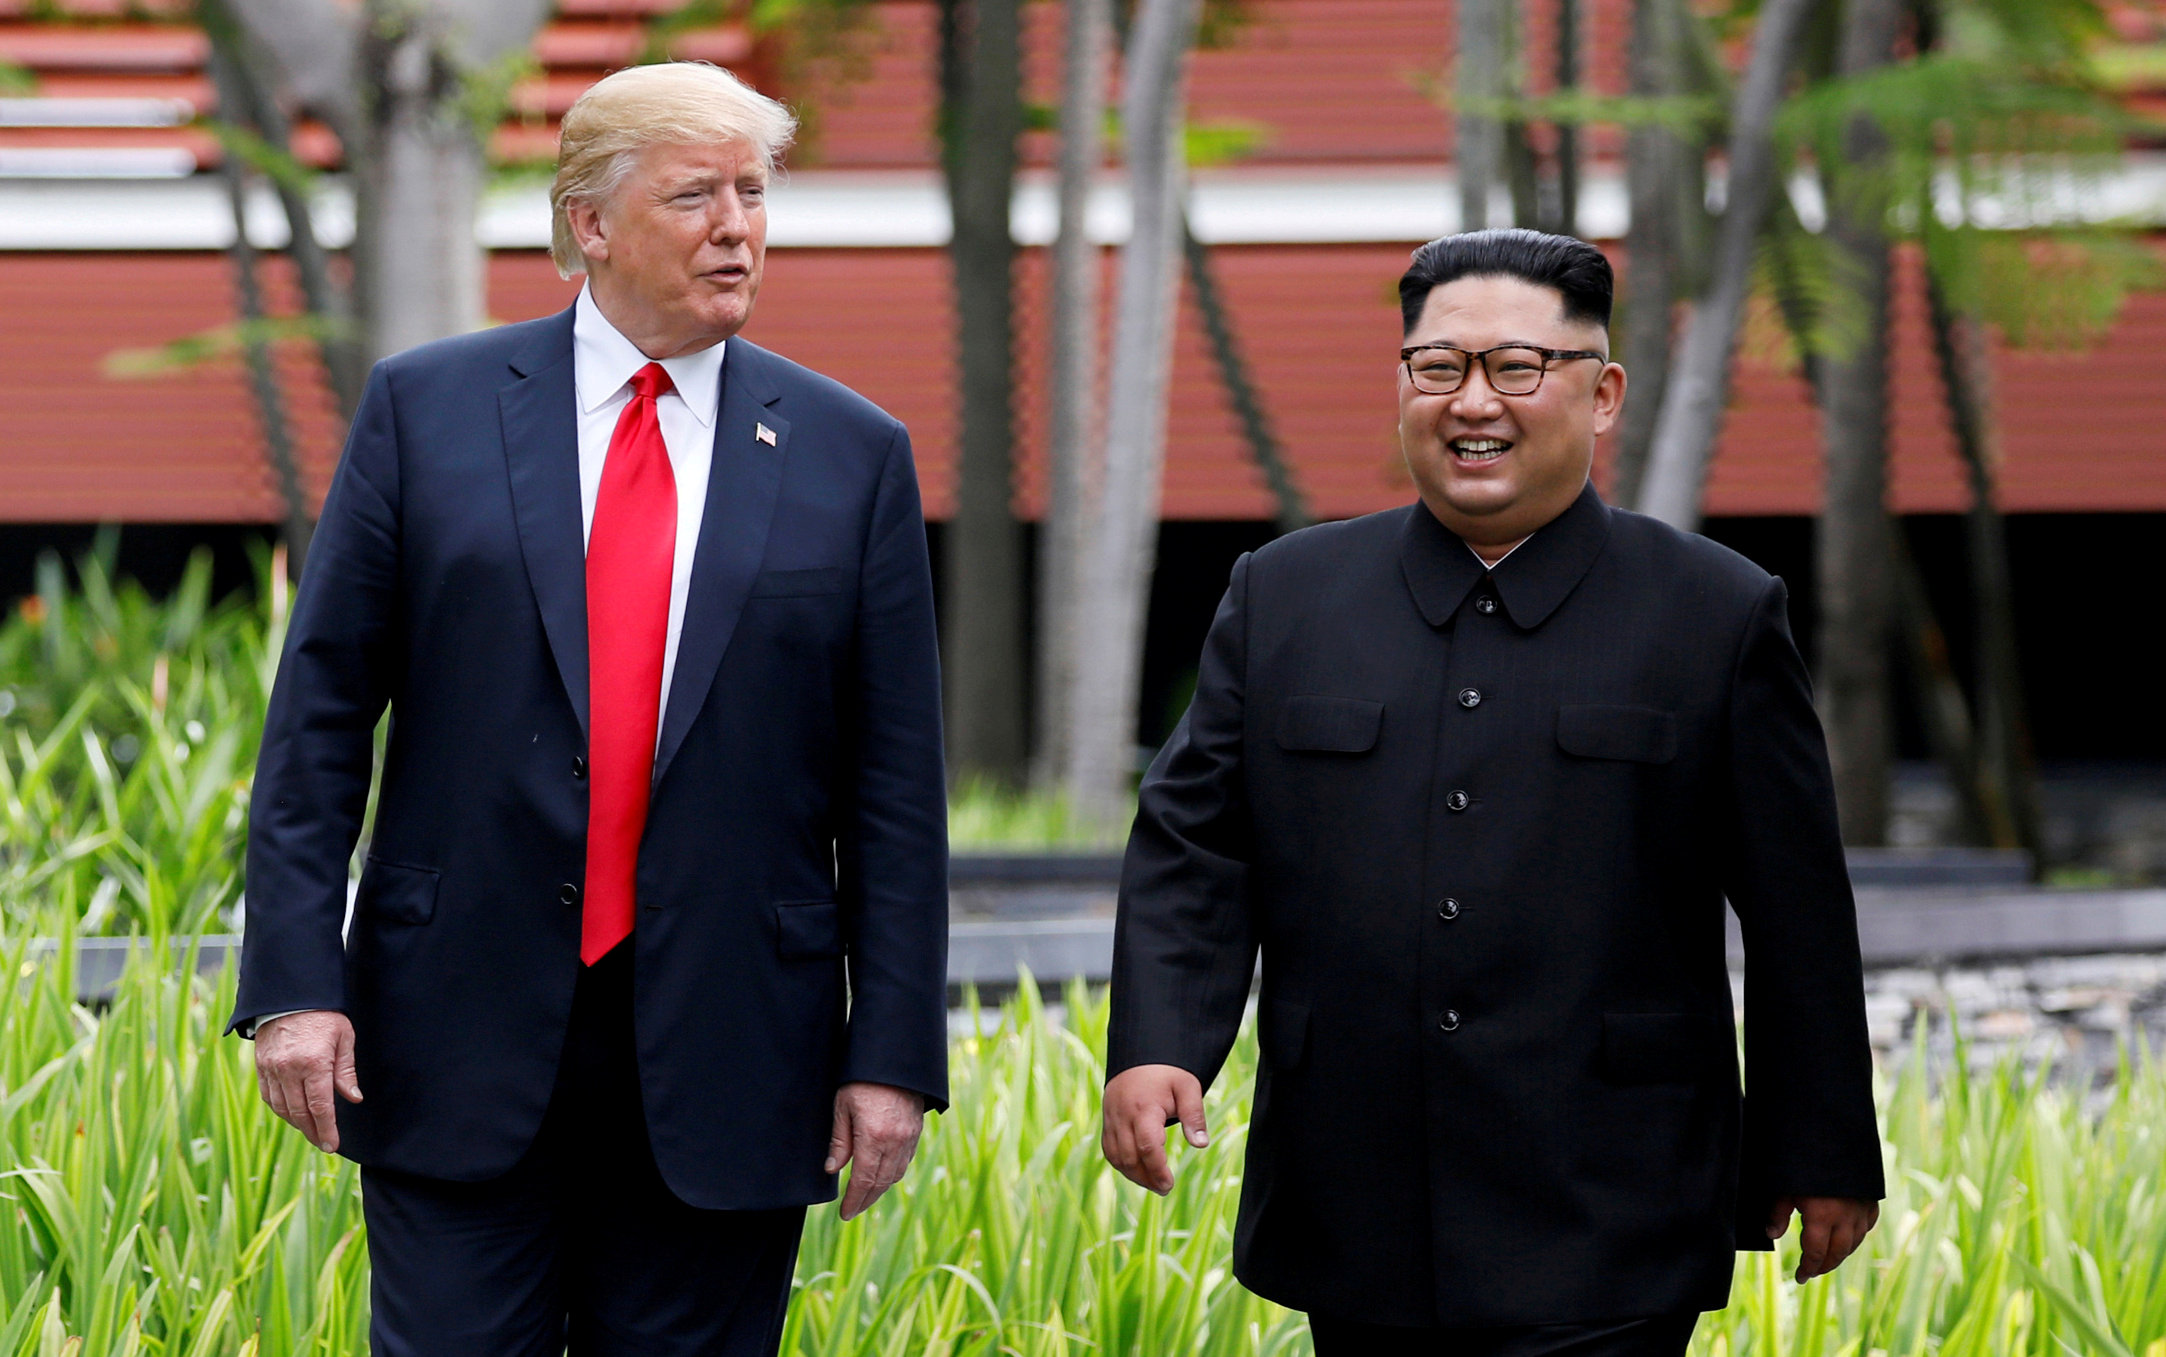 FILE PHOTO: U.S. President Donald Trump and North Korean leader Kim Jong Un walk after lunch at the Capella Hotel on Sentosa island in Singapore June 12, 2018. REUTERS/Jonathan Ernst/File Photo